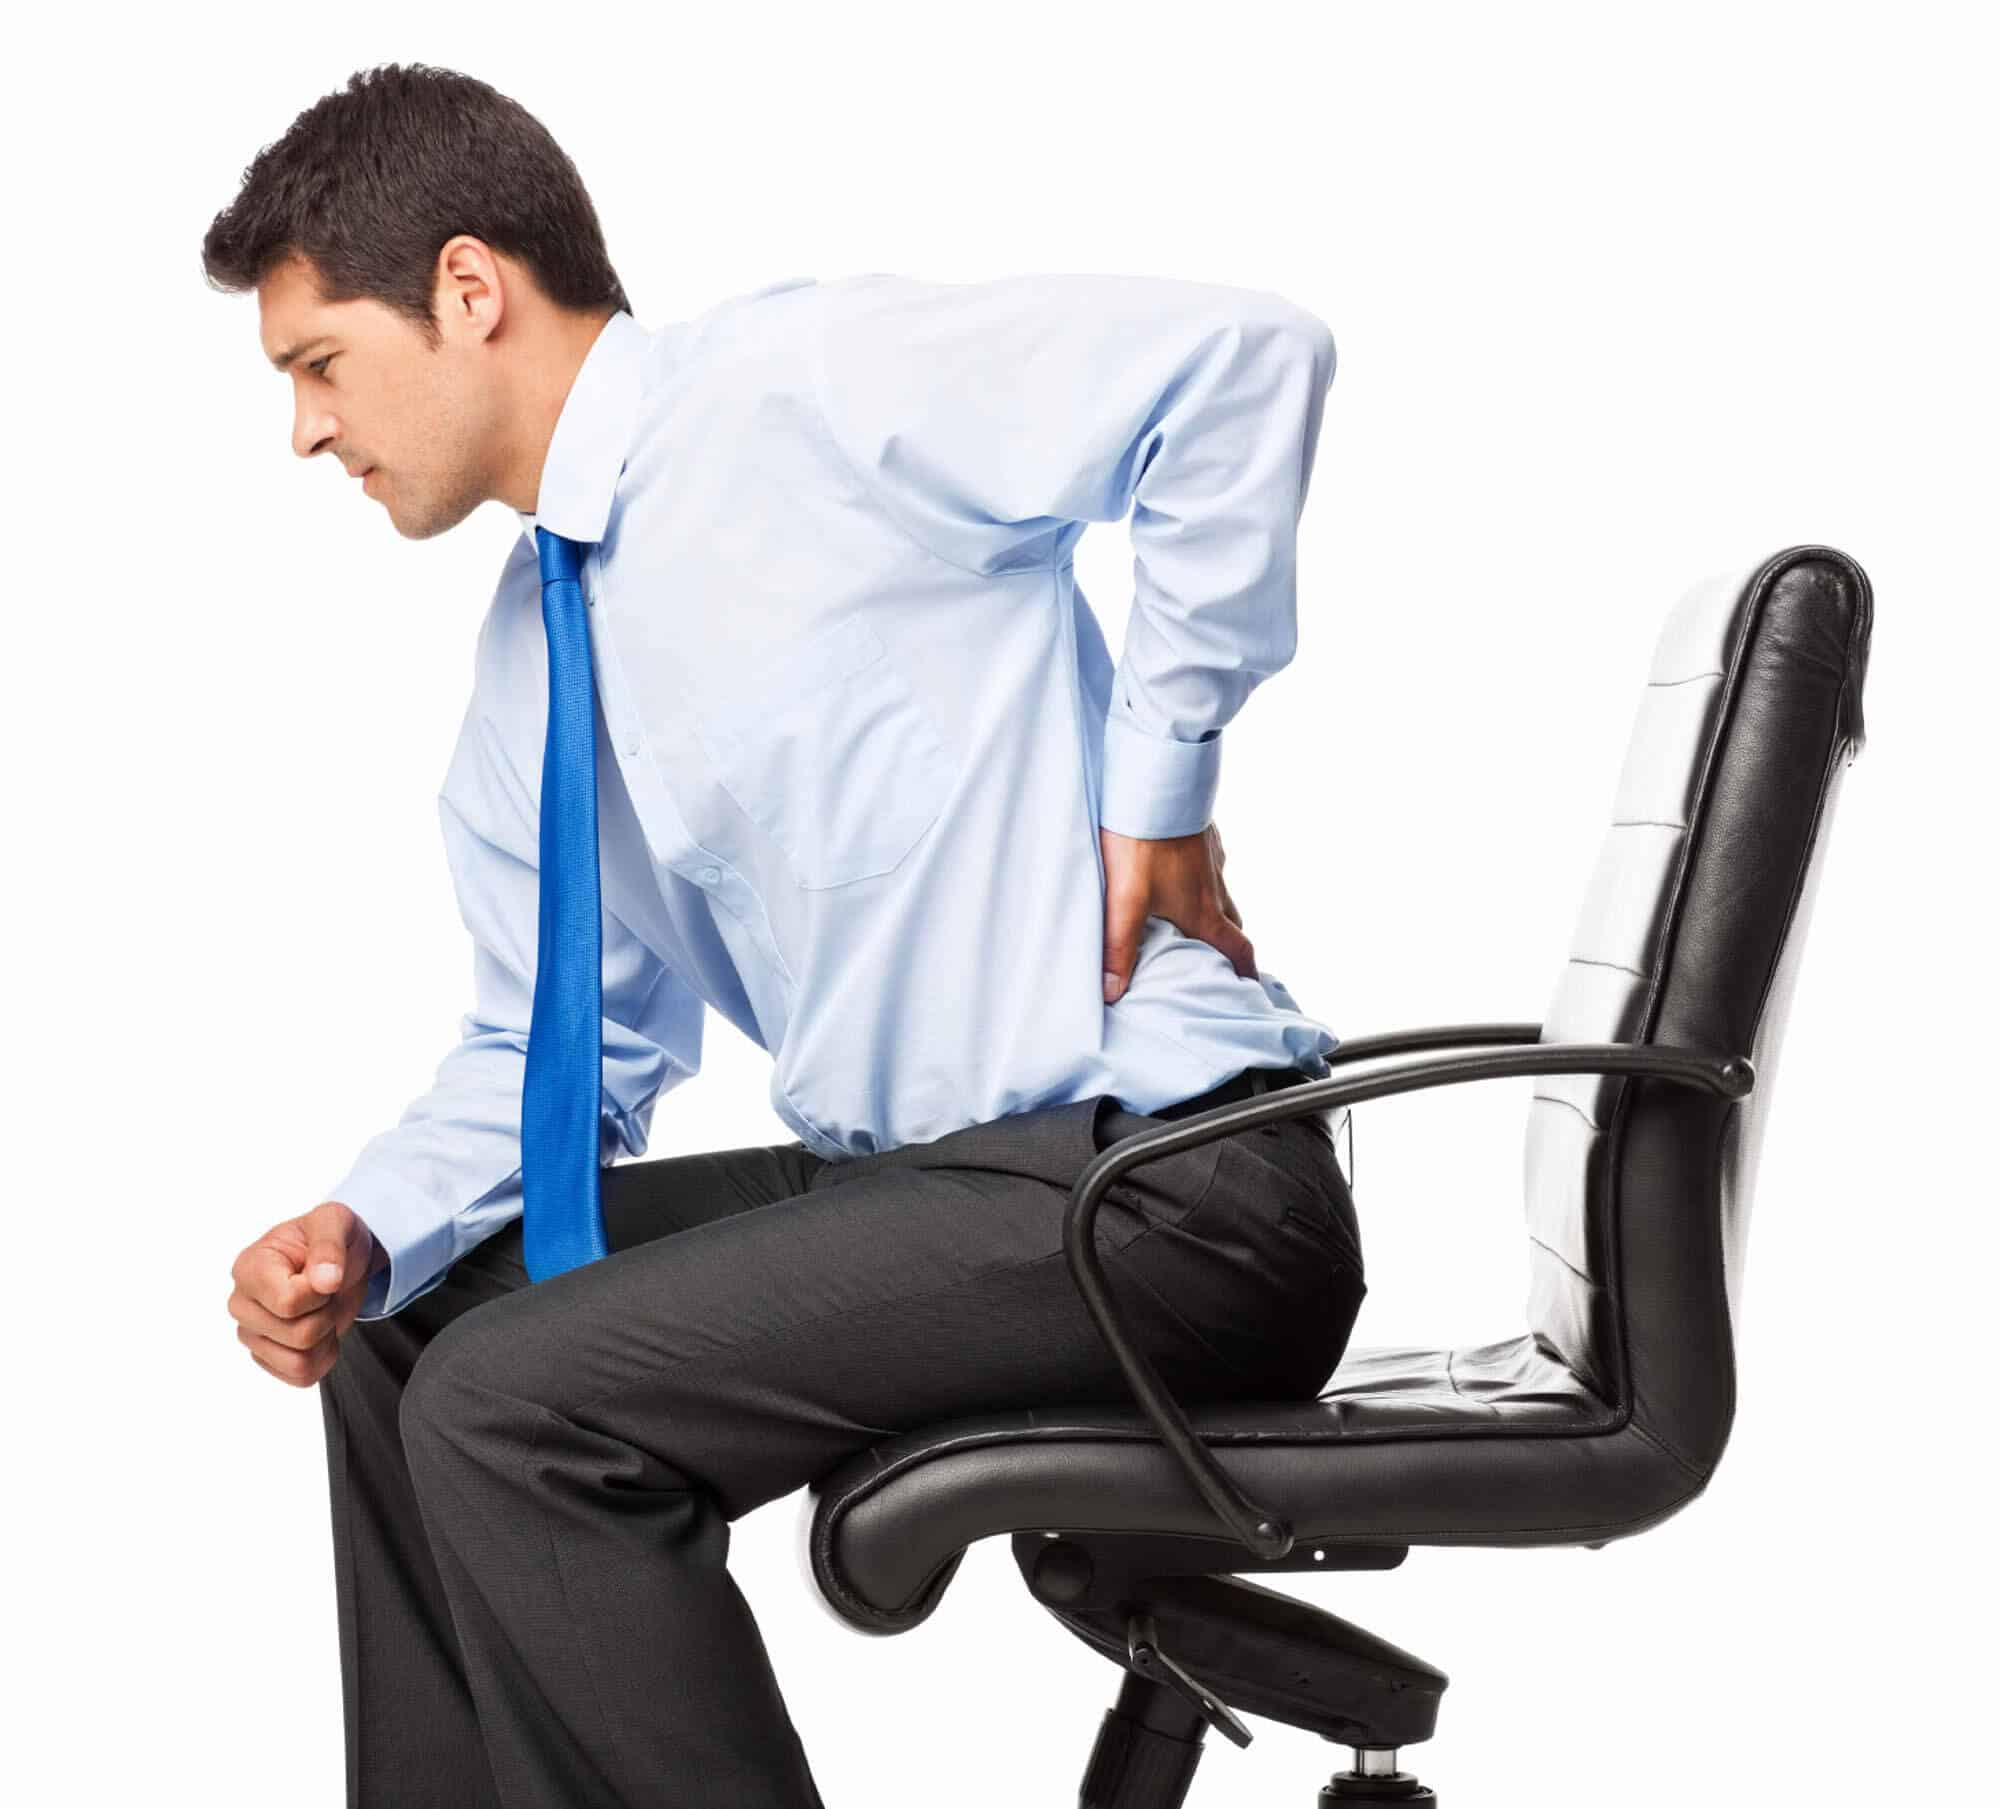 office chair you sit backwards stool philippines guide and how to buy a desk 43 top 10